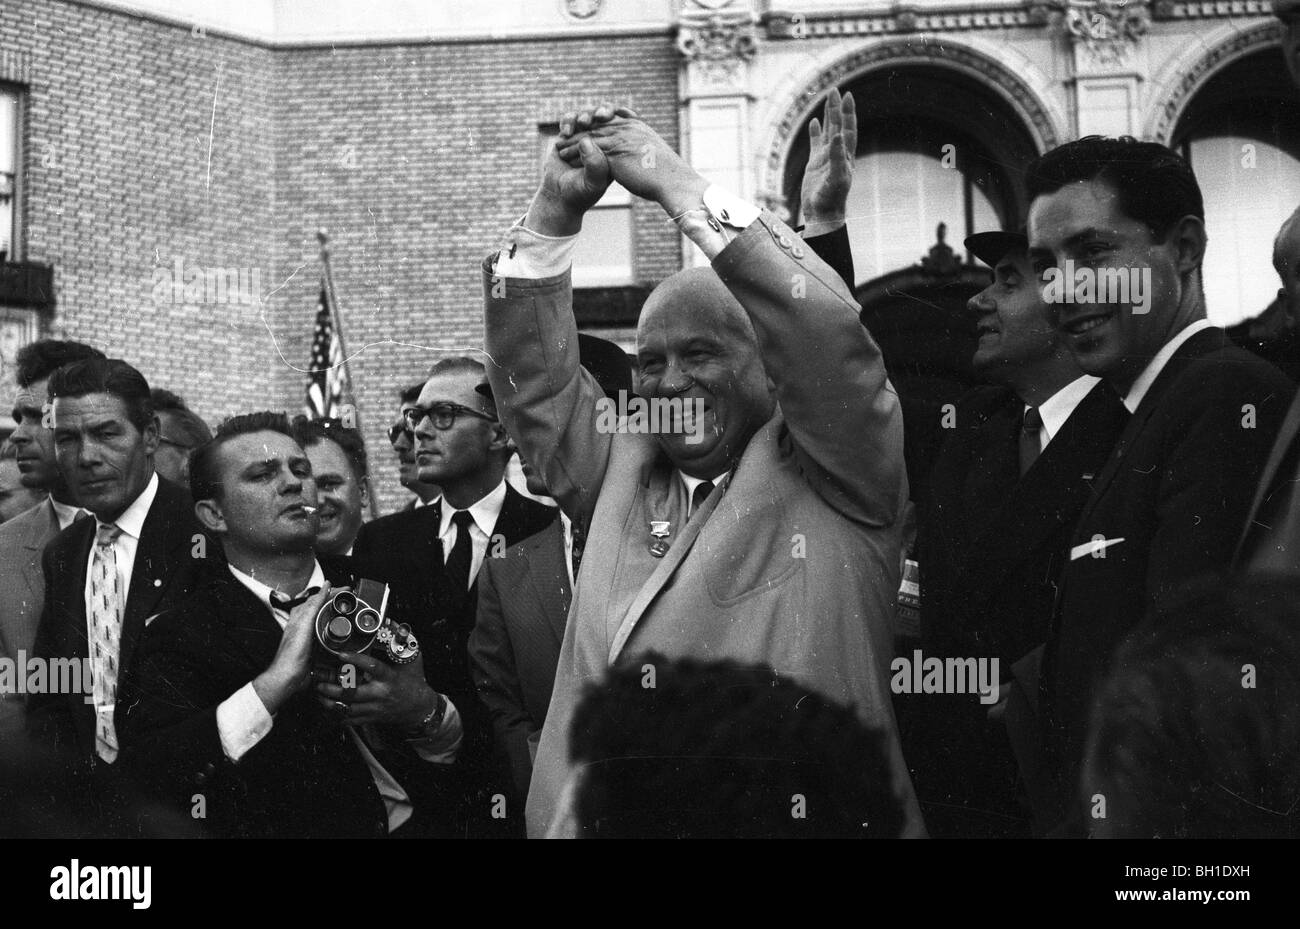 Nikita Khrushchev tours San Francisco during his 1959 tour of America. - Stock Image